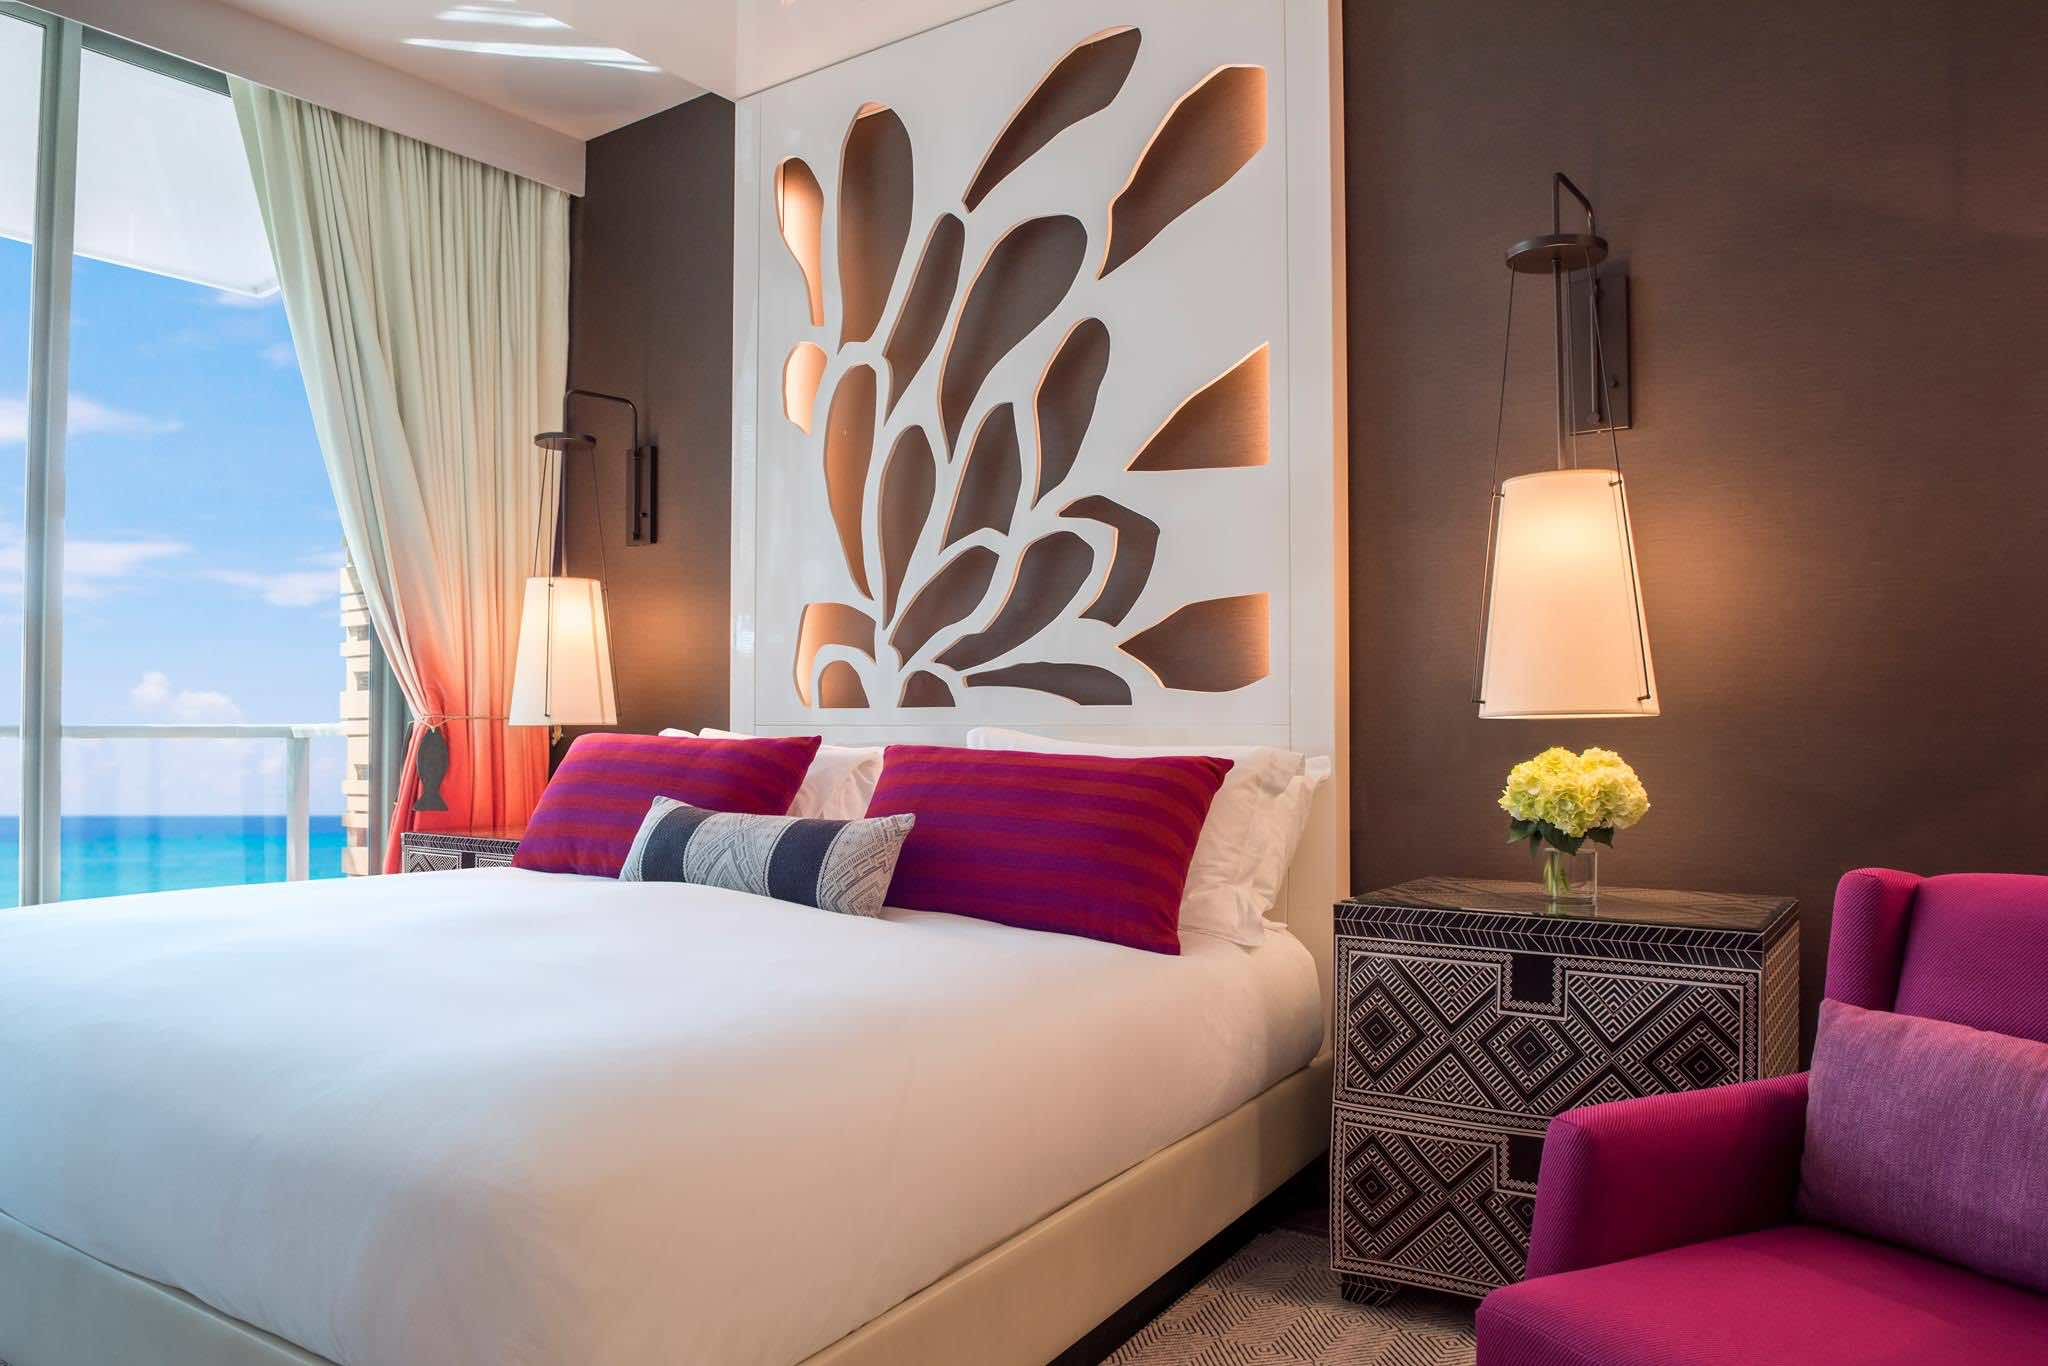 Luxury hotels in Cayman Islands includes Kimpton Seafire Resort + Spa-Bedroom with sea view